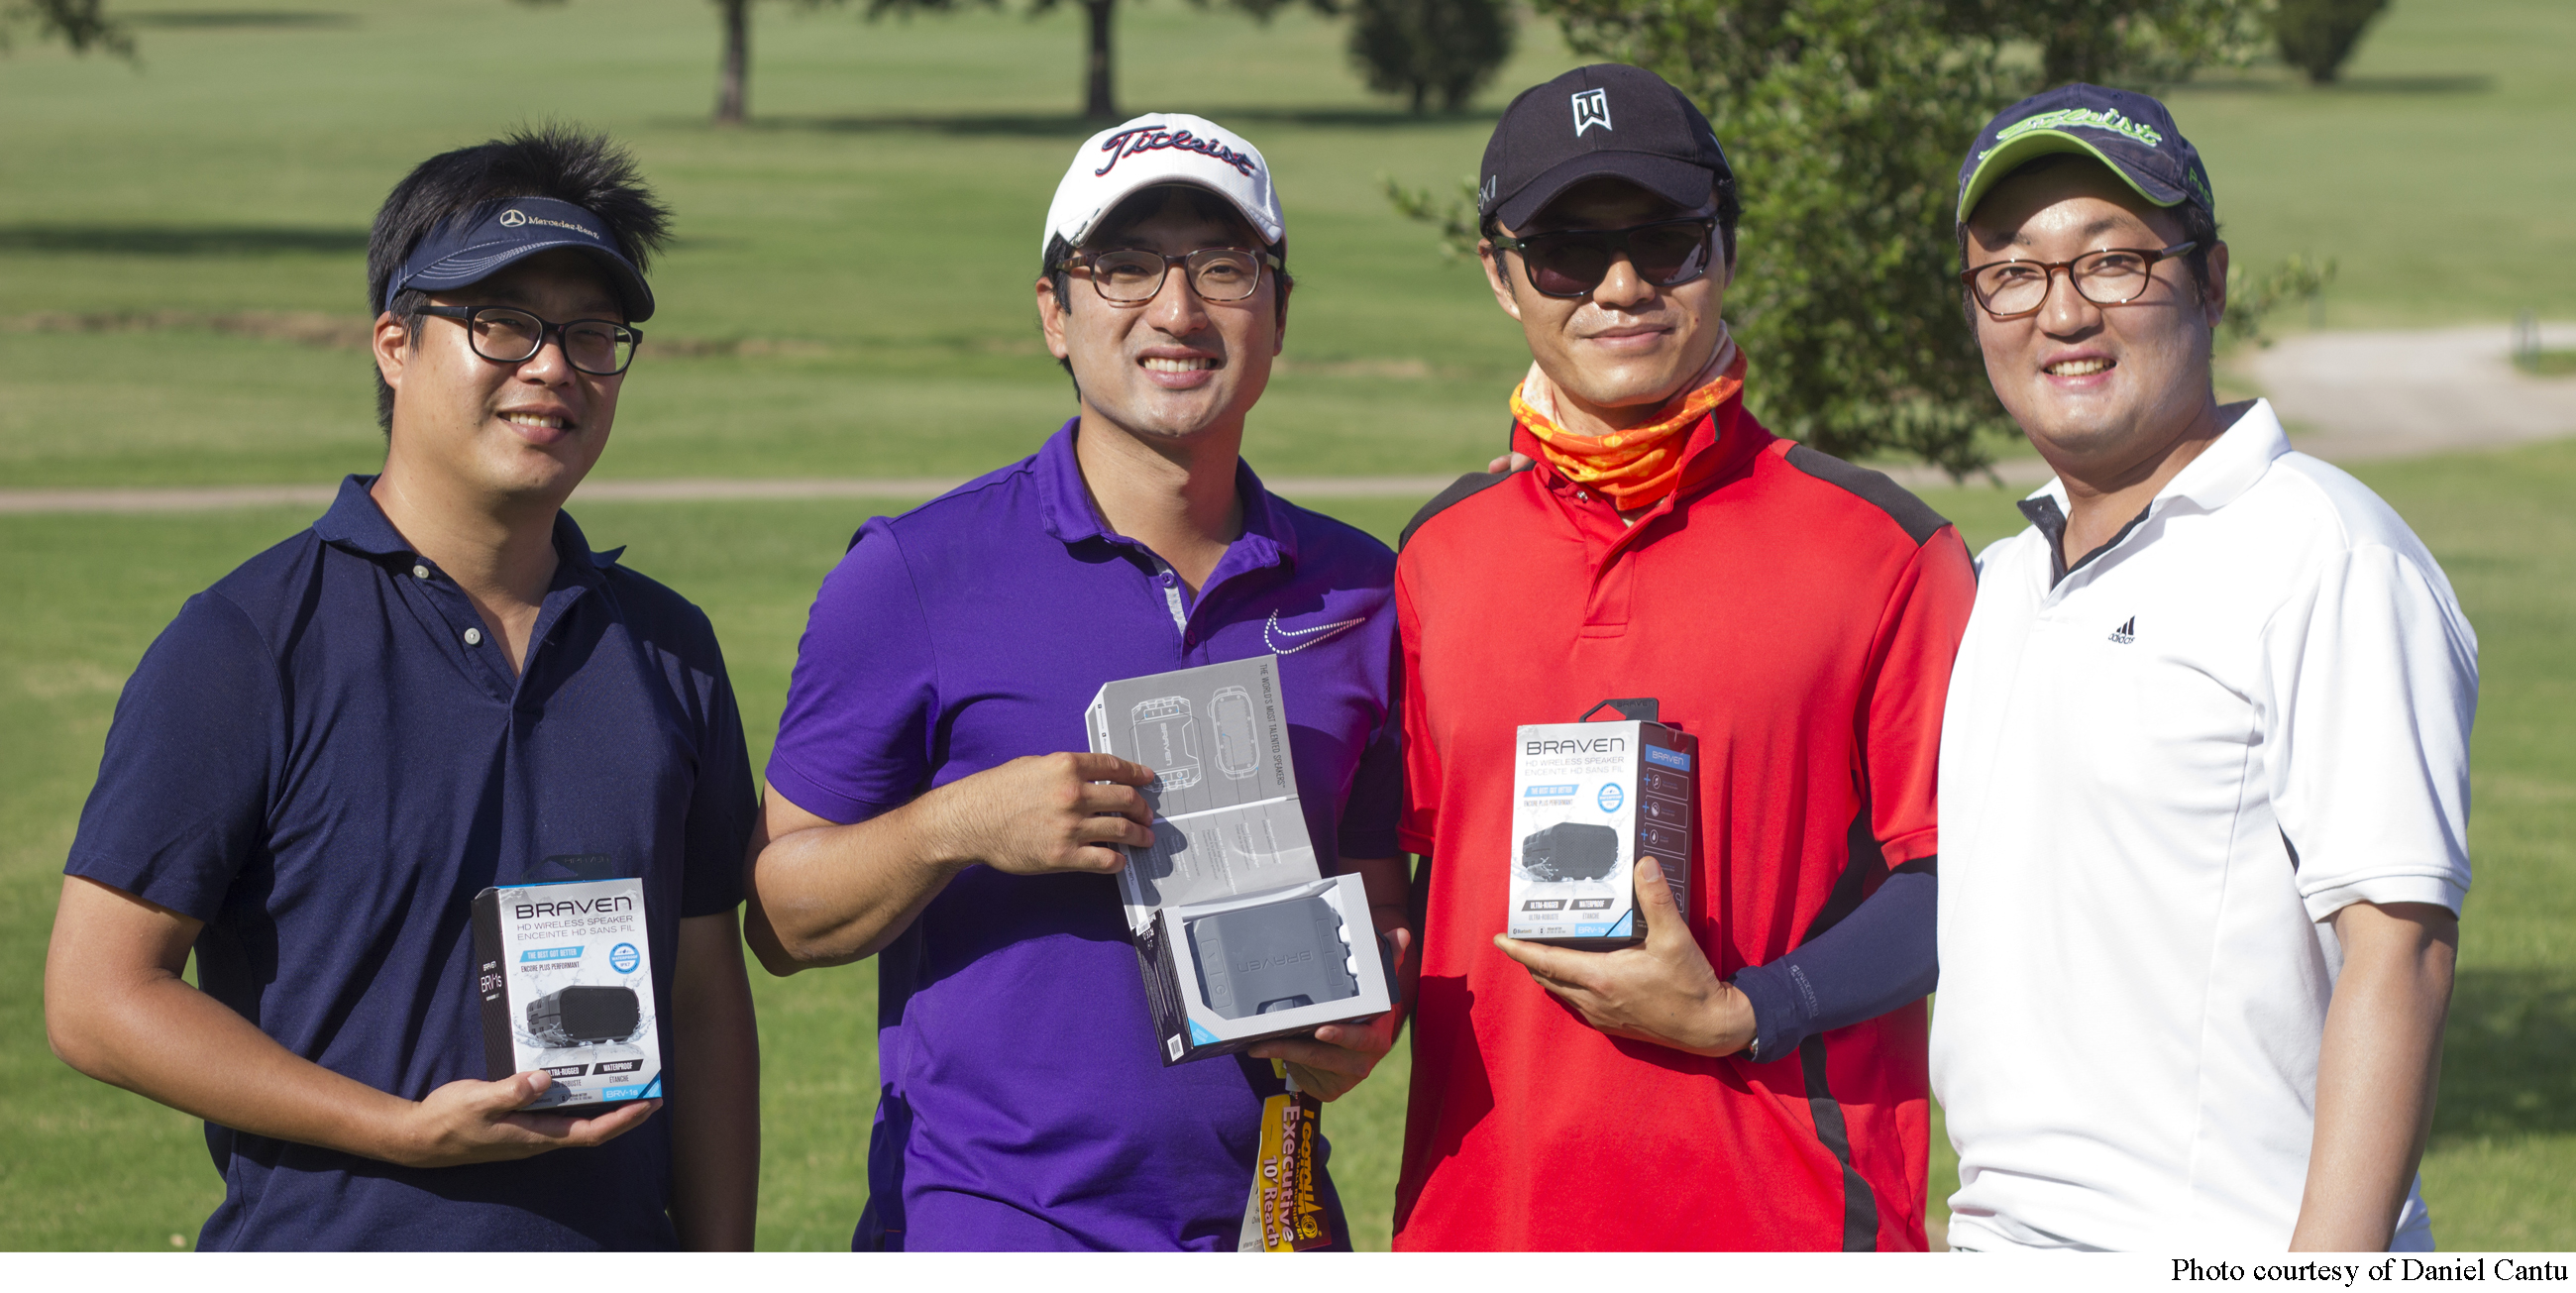 The July 2015 winning team, Kwon 3D, will remain the team to beat this spring.